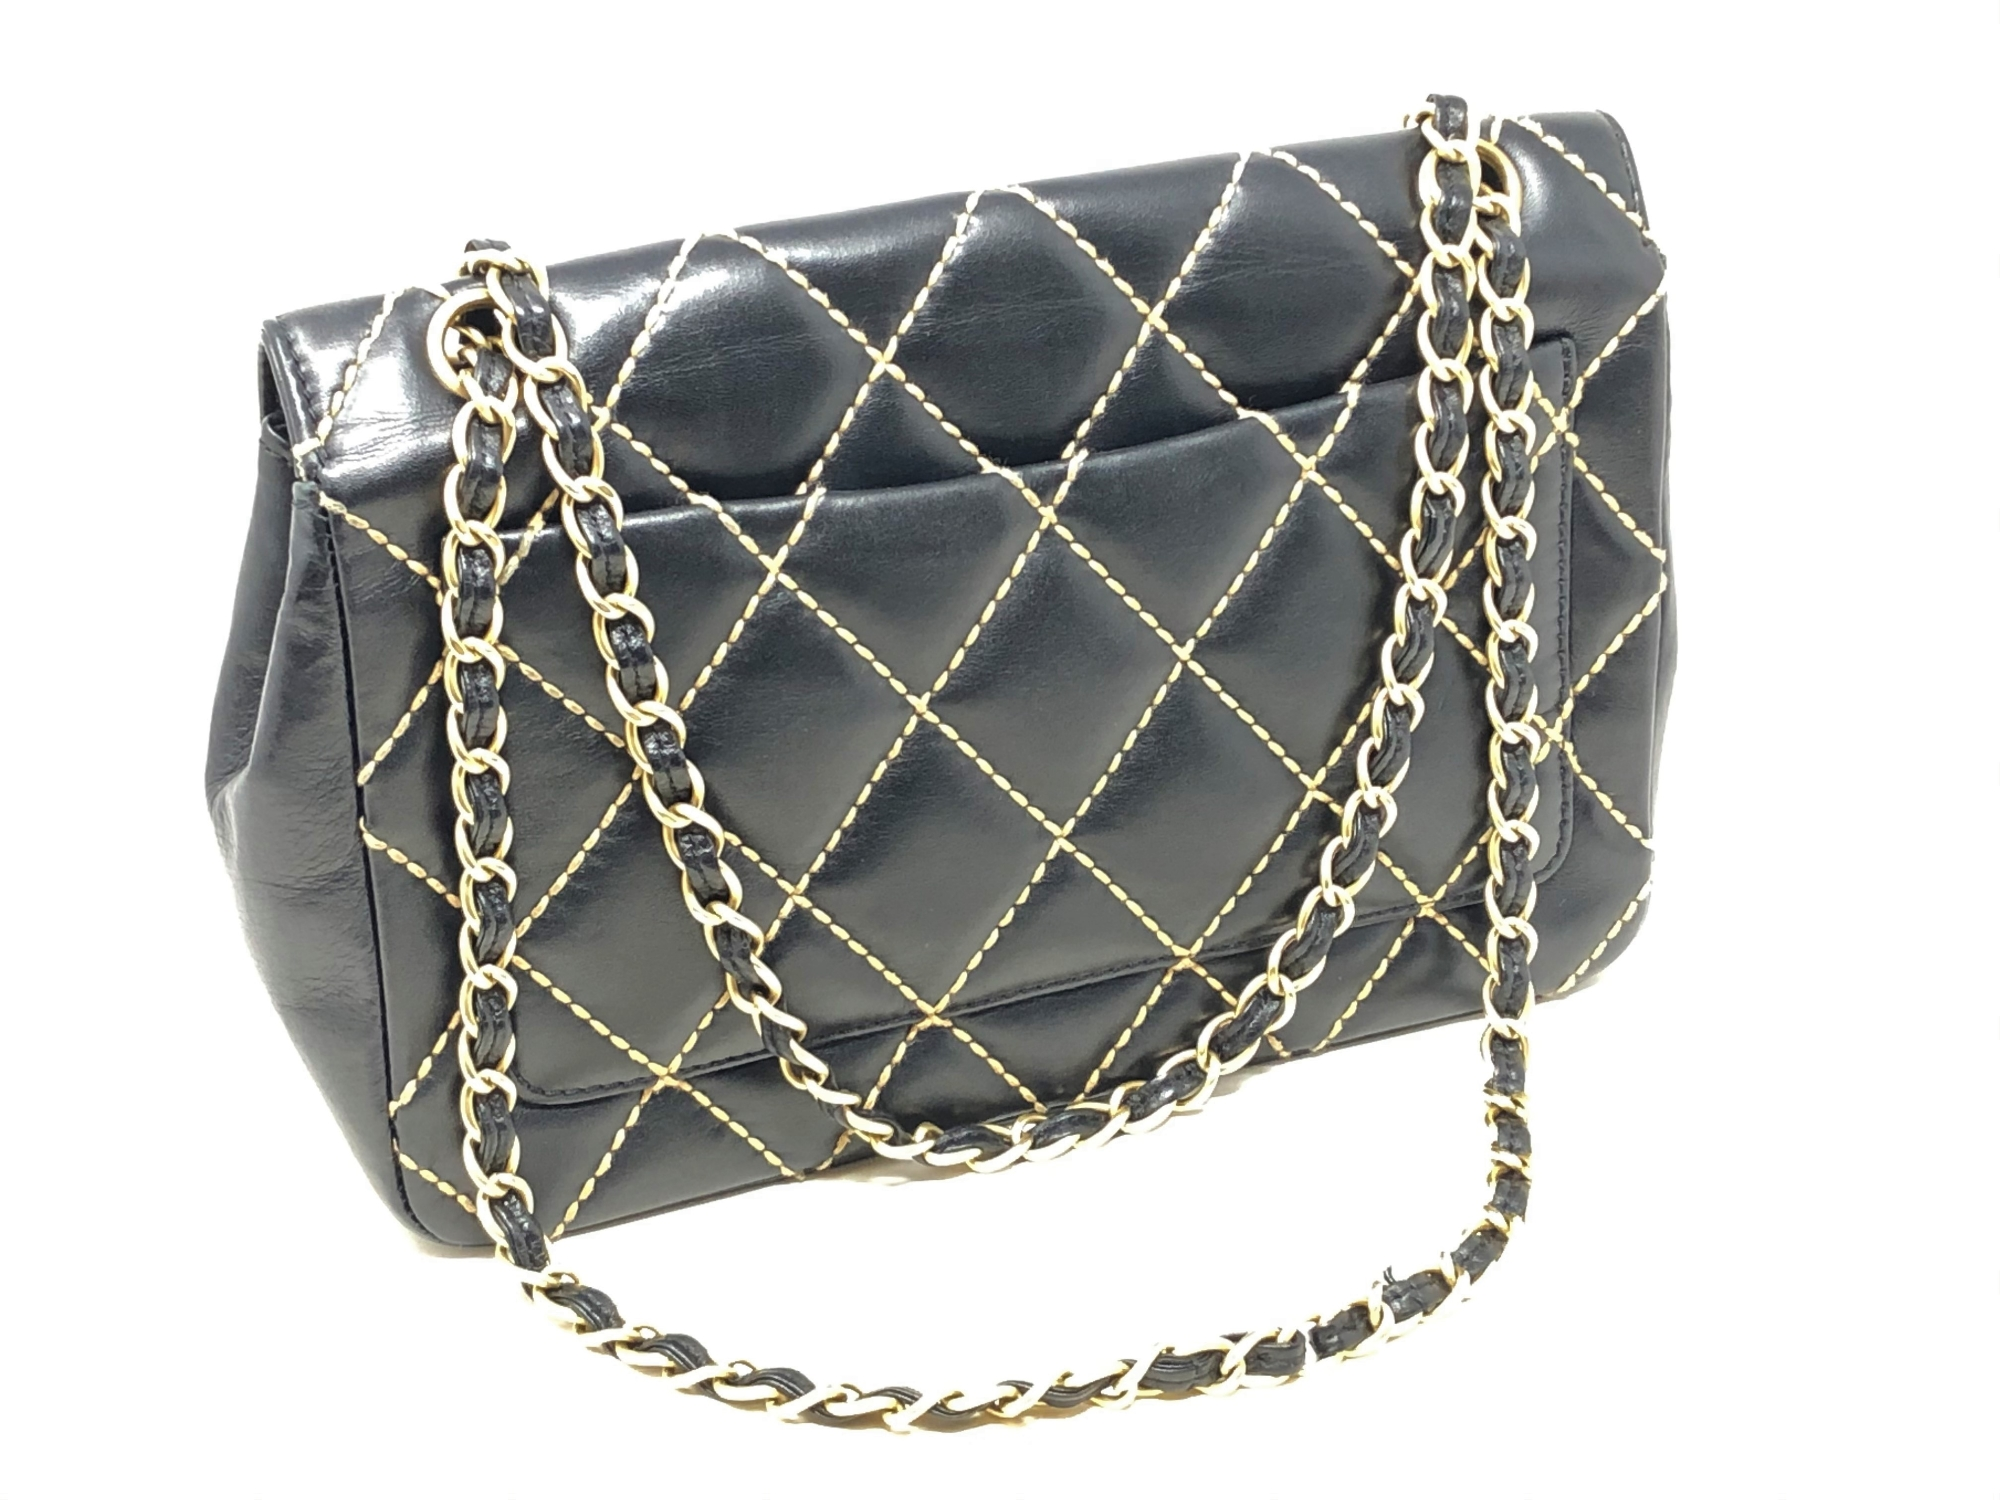 Lot 59 - A lady's Chanel black stitched leather chain shoulder bag,